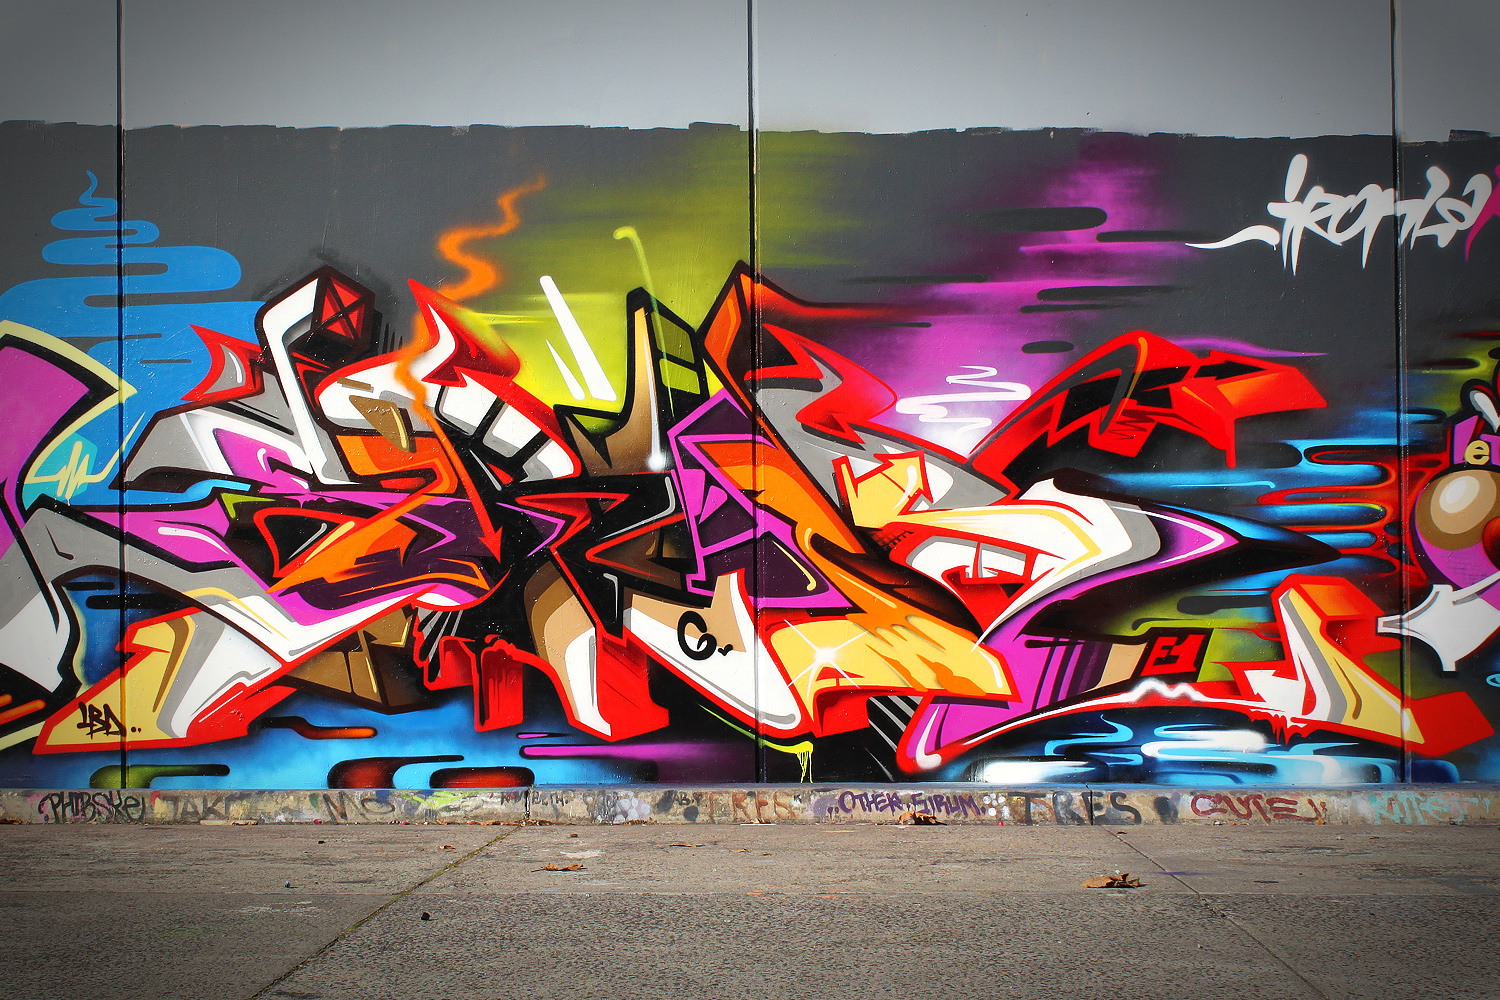 Mural and Graffiti art: June 2013